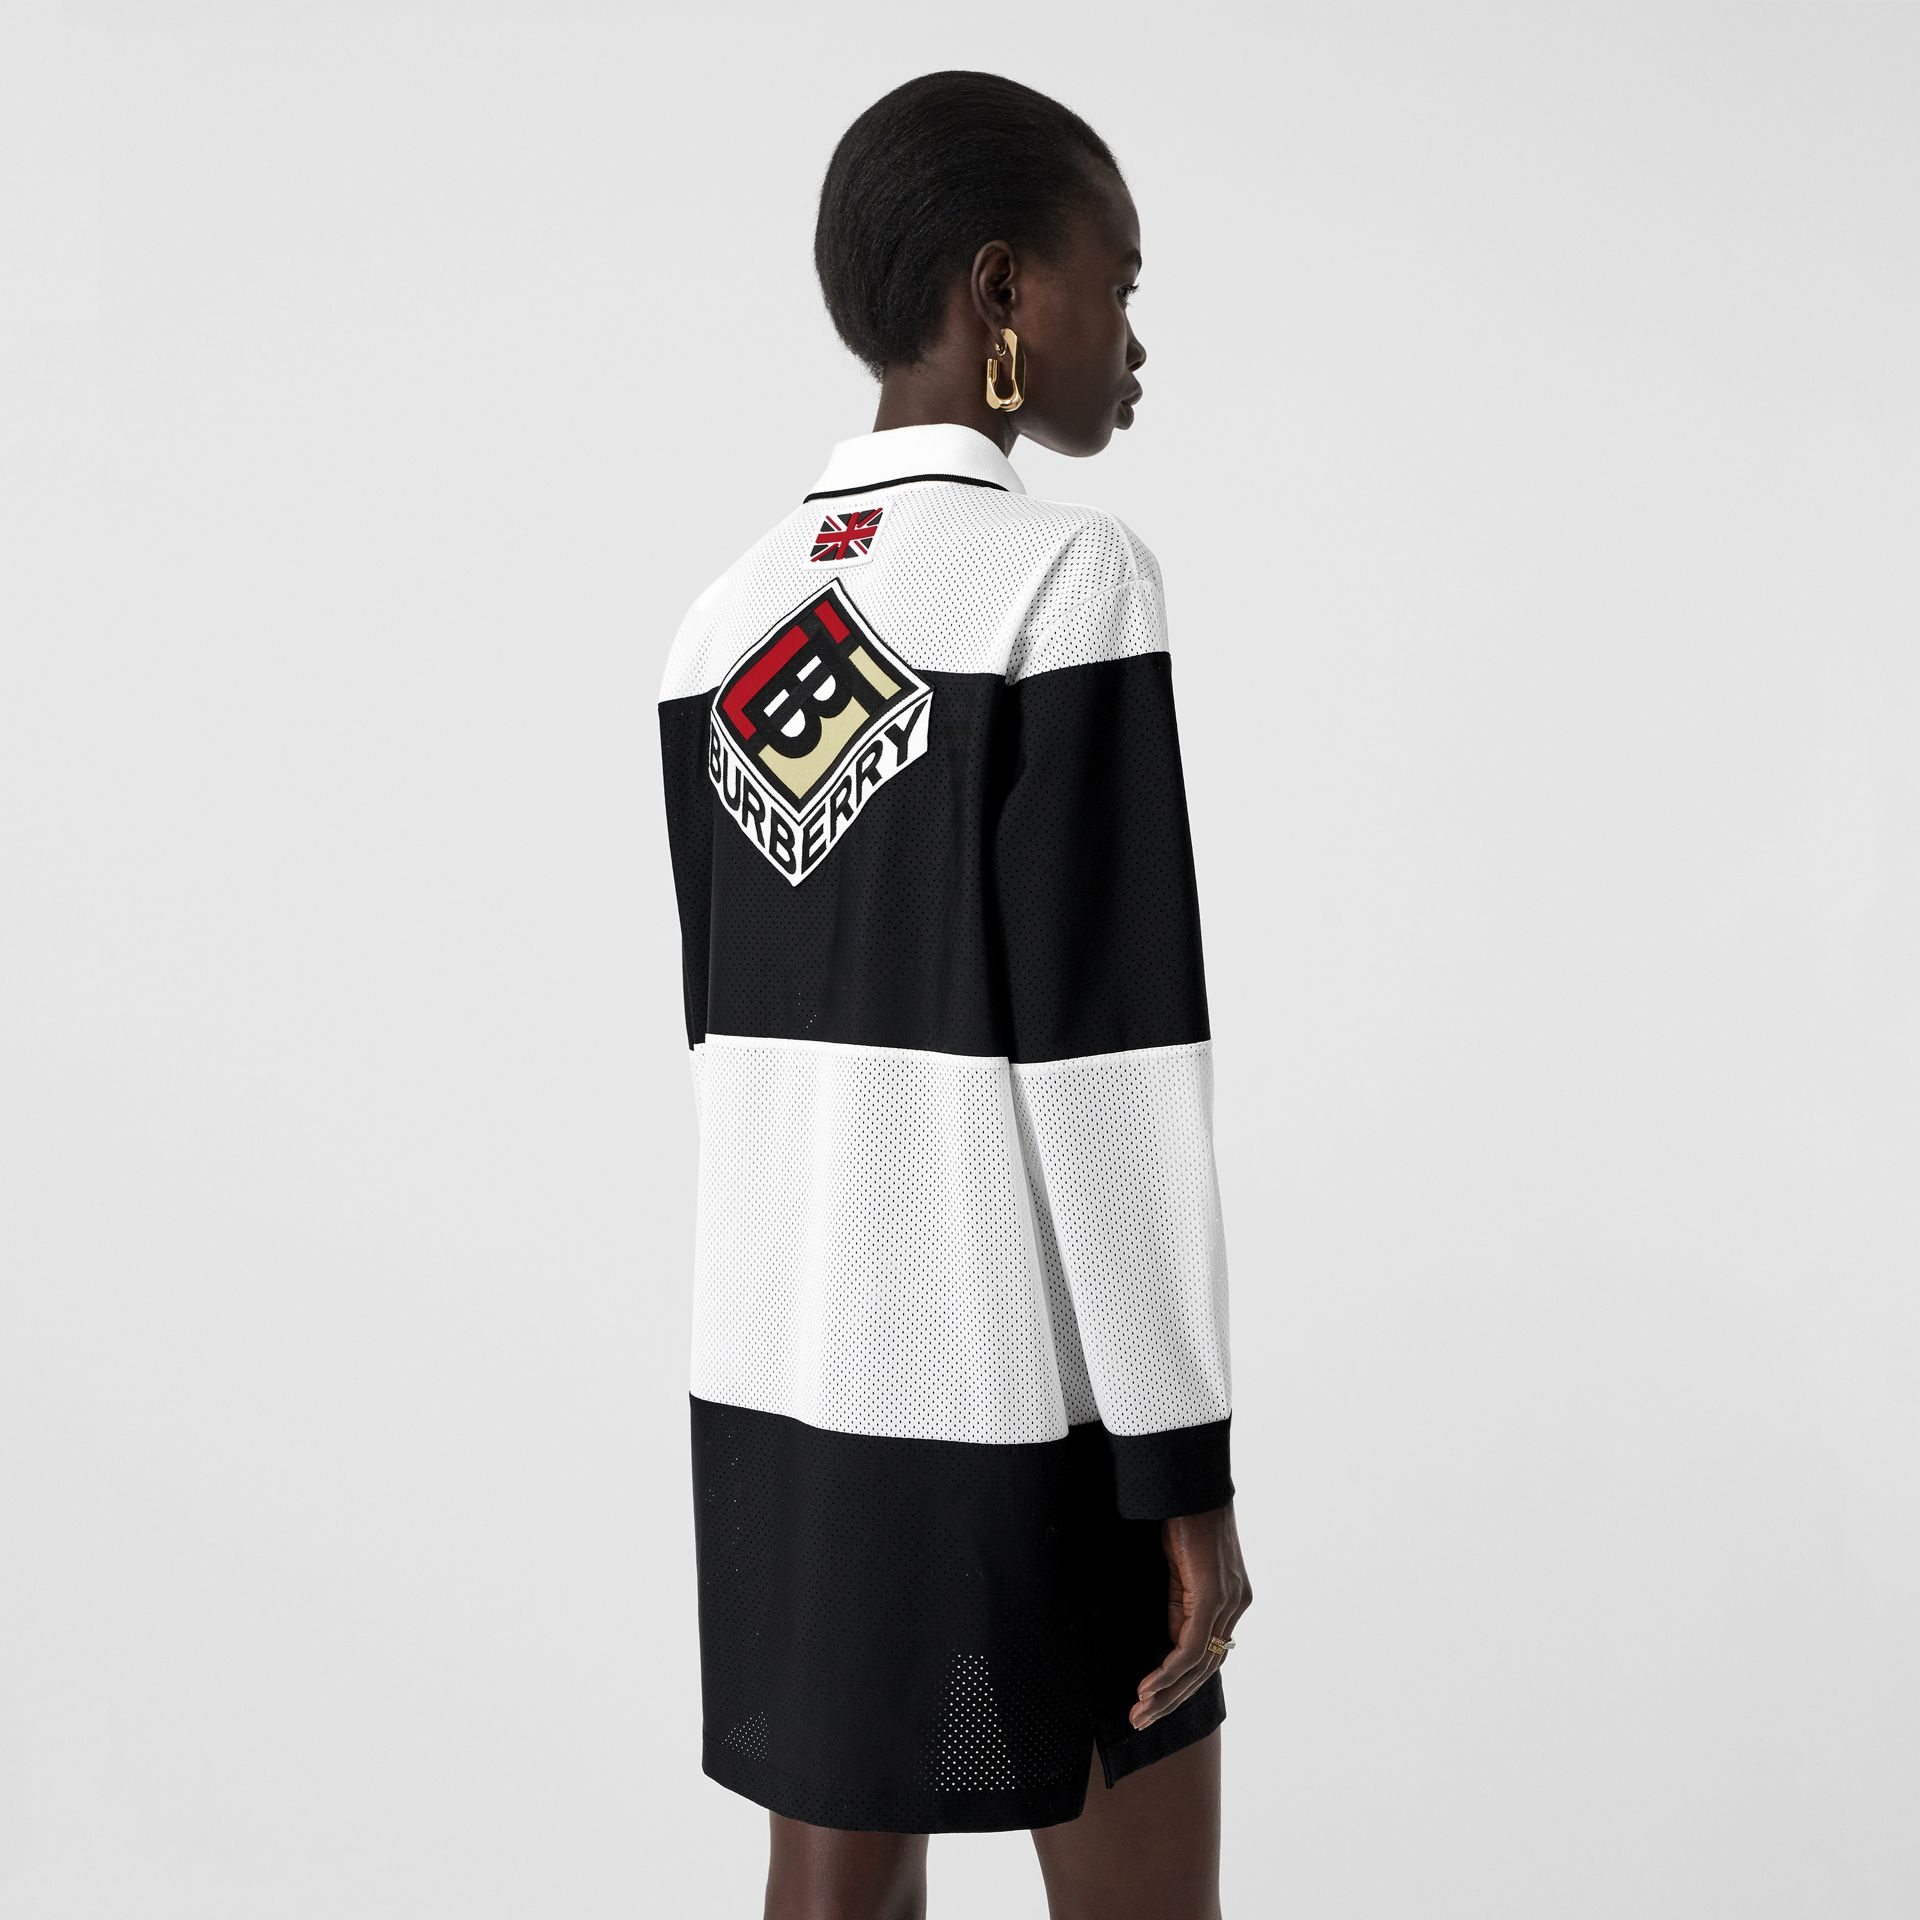 Logo Graphic Striped Mesh Polo Shirt Dress in Black - Women | Burberry - gallery image 2